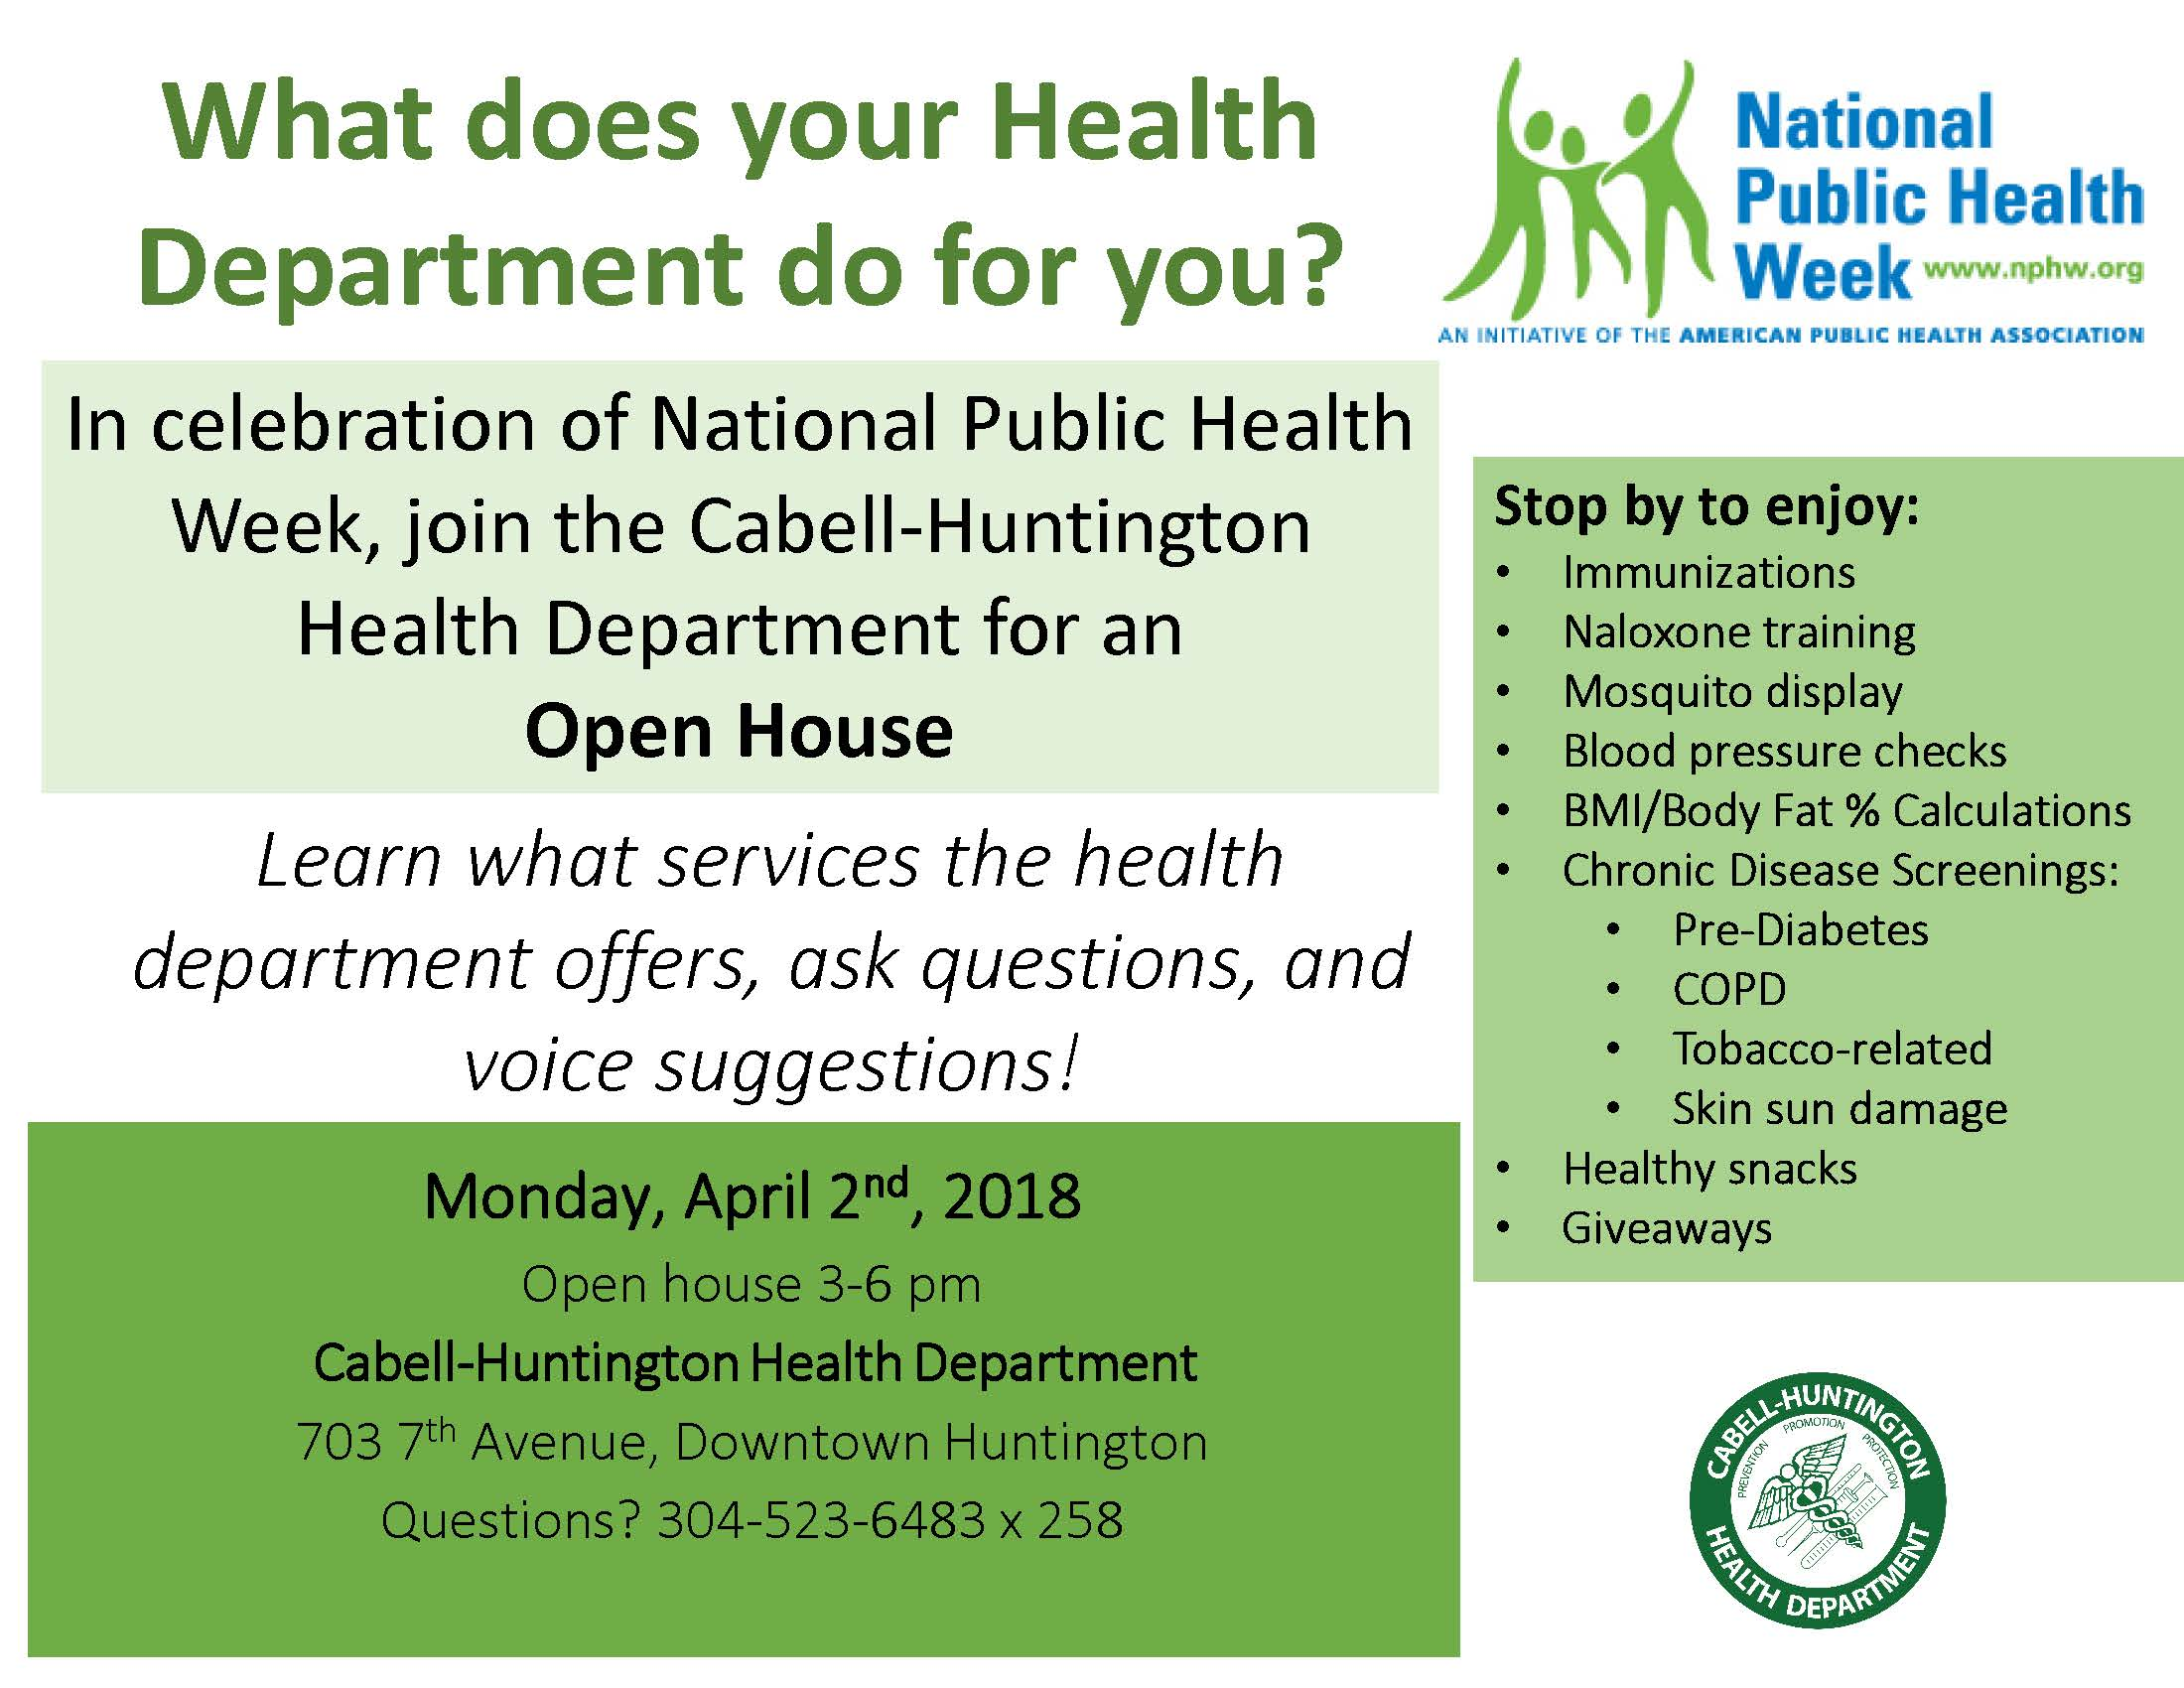 Open House at Cabell Co  Health Dept  for National Public